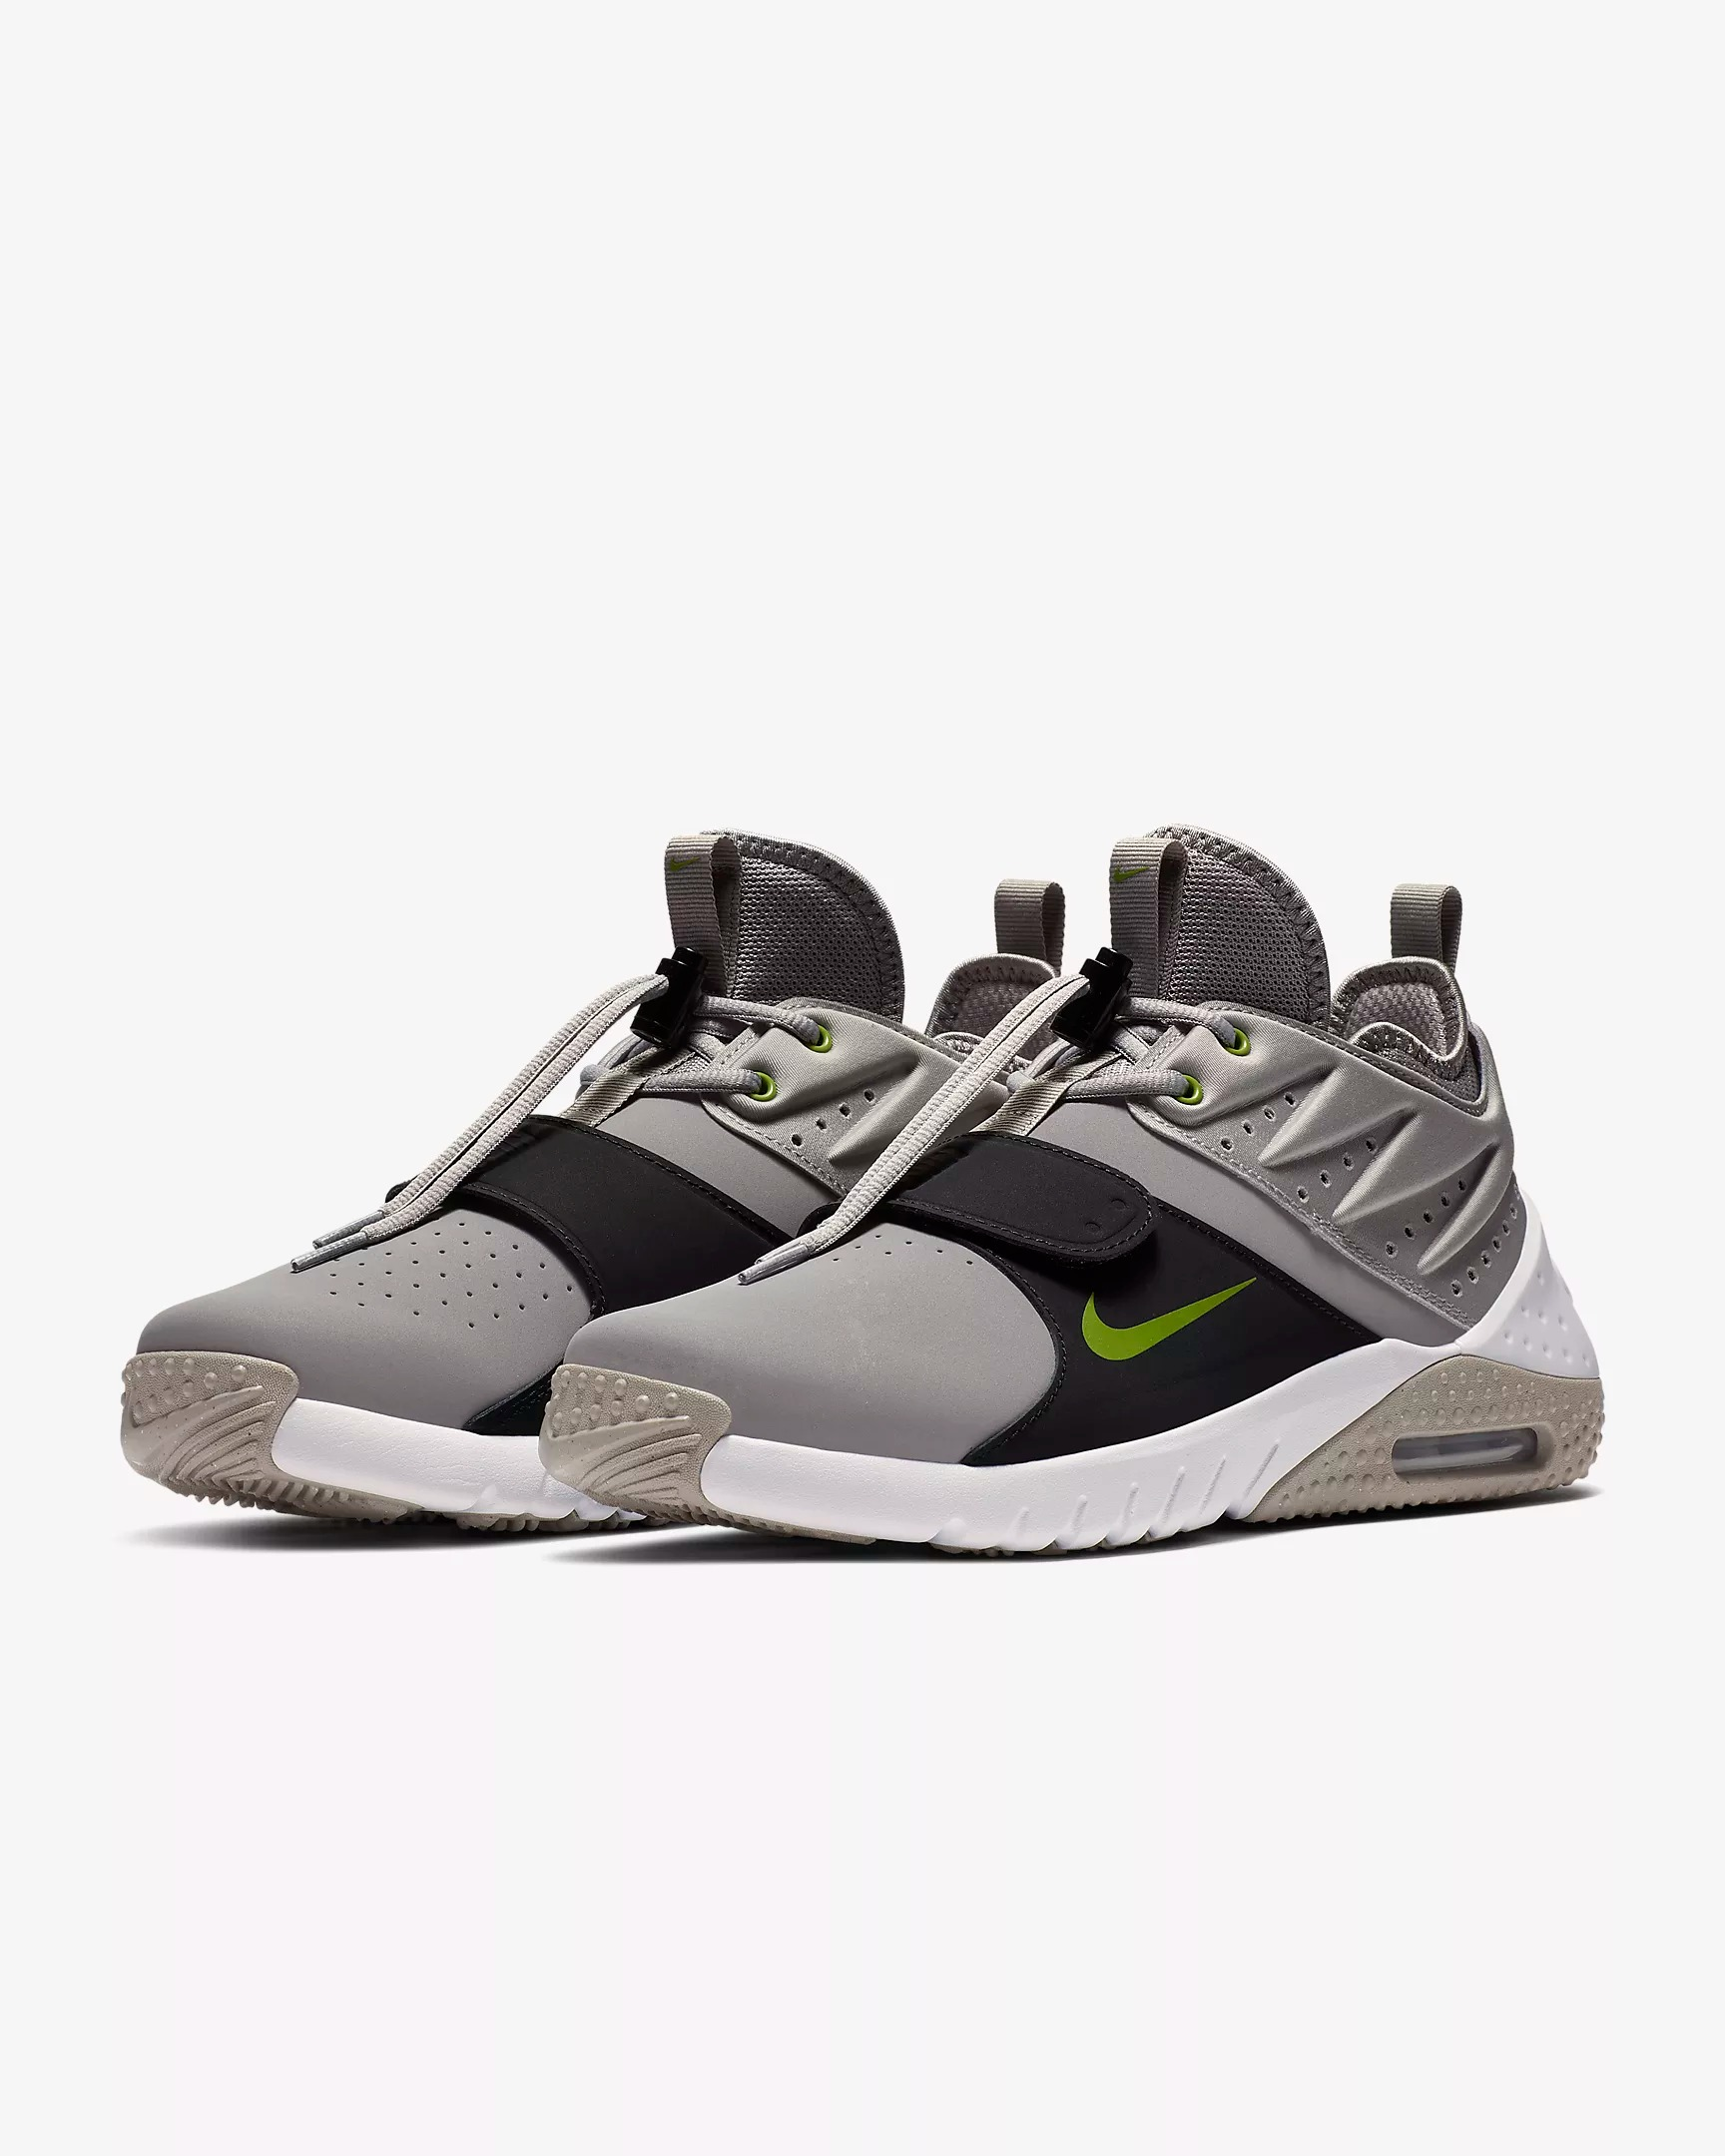 size 40 b1518 5c532 Nike Air Max Trainer 1 Leather Training Shoes - SPORT SHOES TRAINING SHOES  - Superfanas.lt